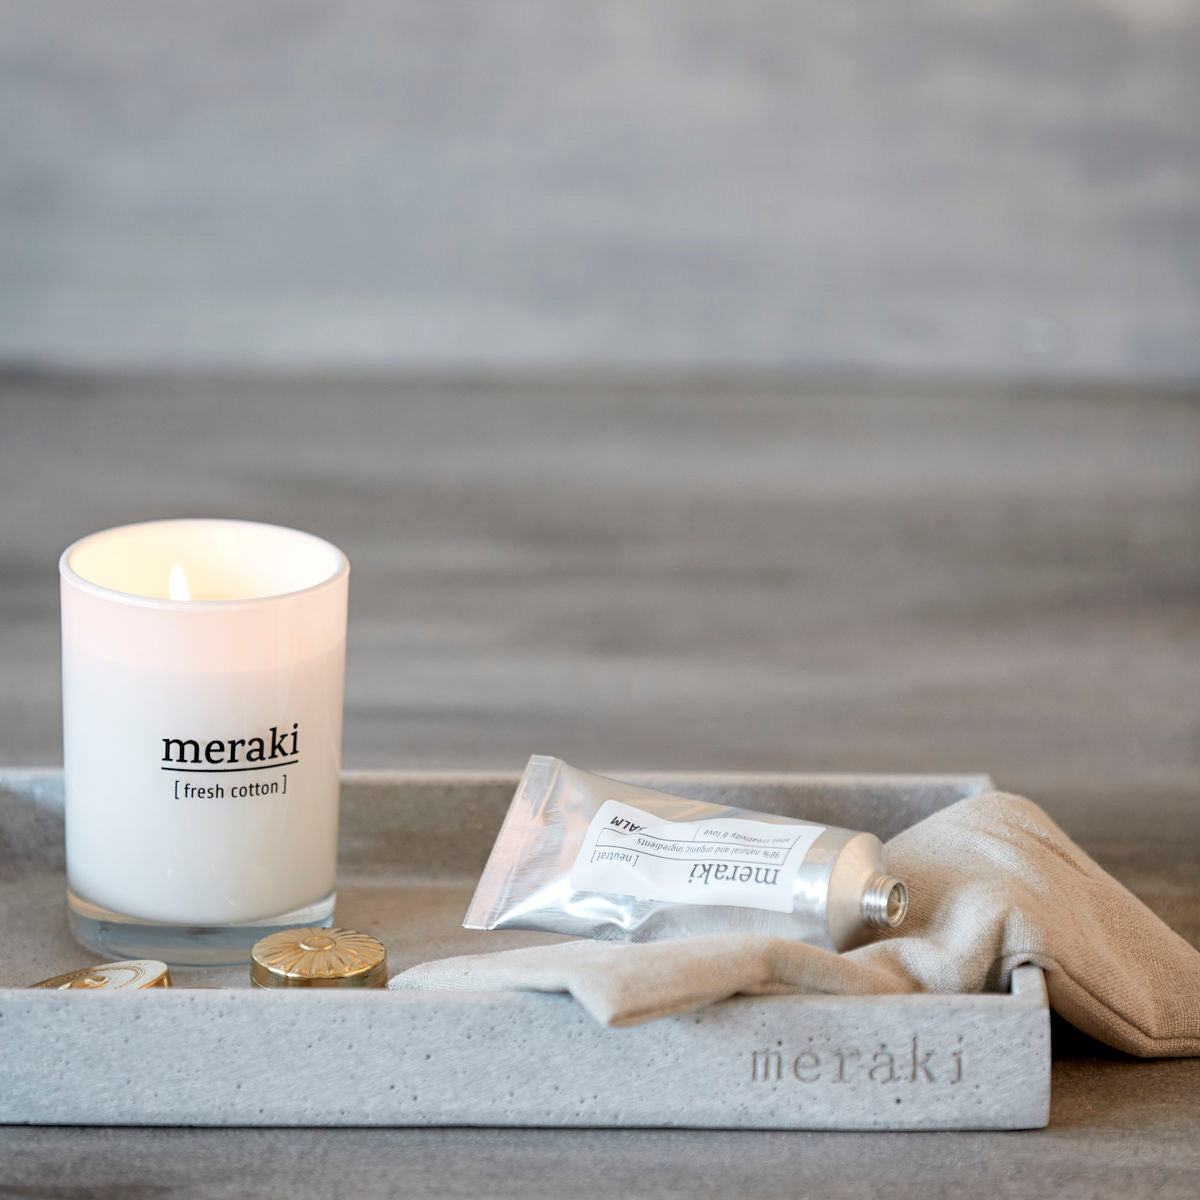 Meraki - Duftlys - Fresh Cotton, small